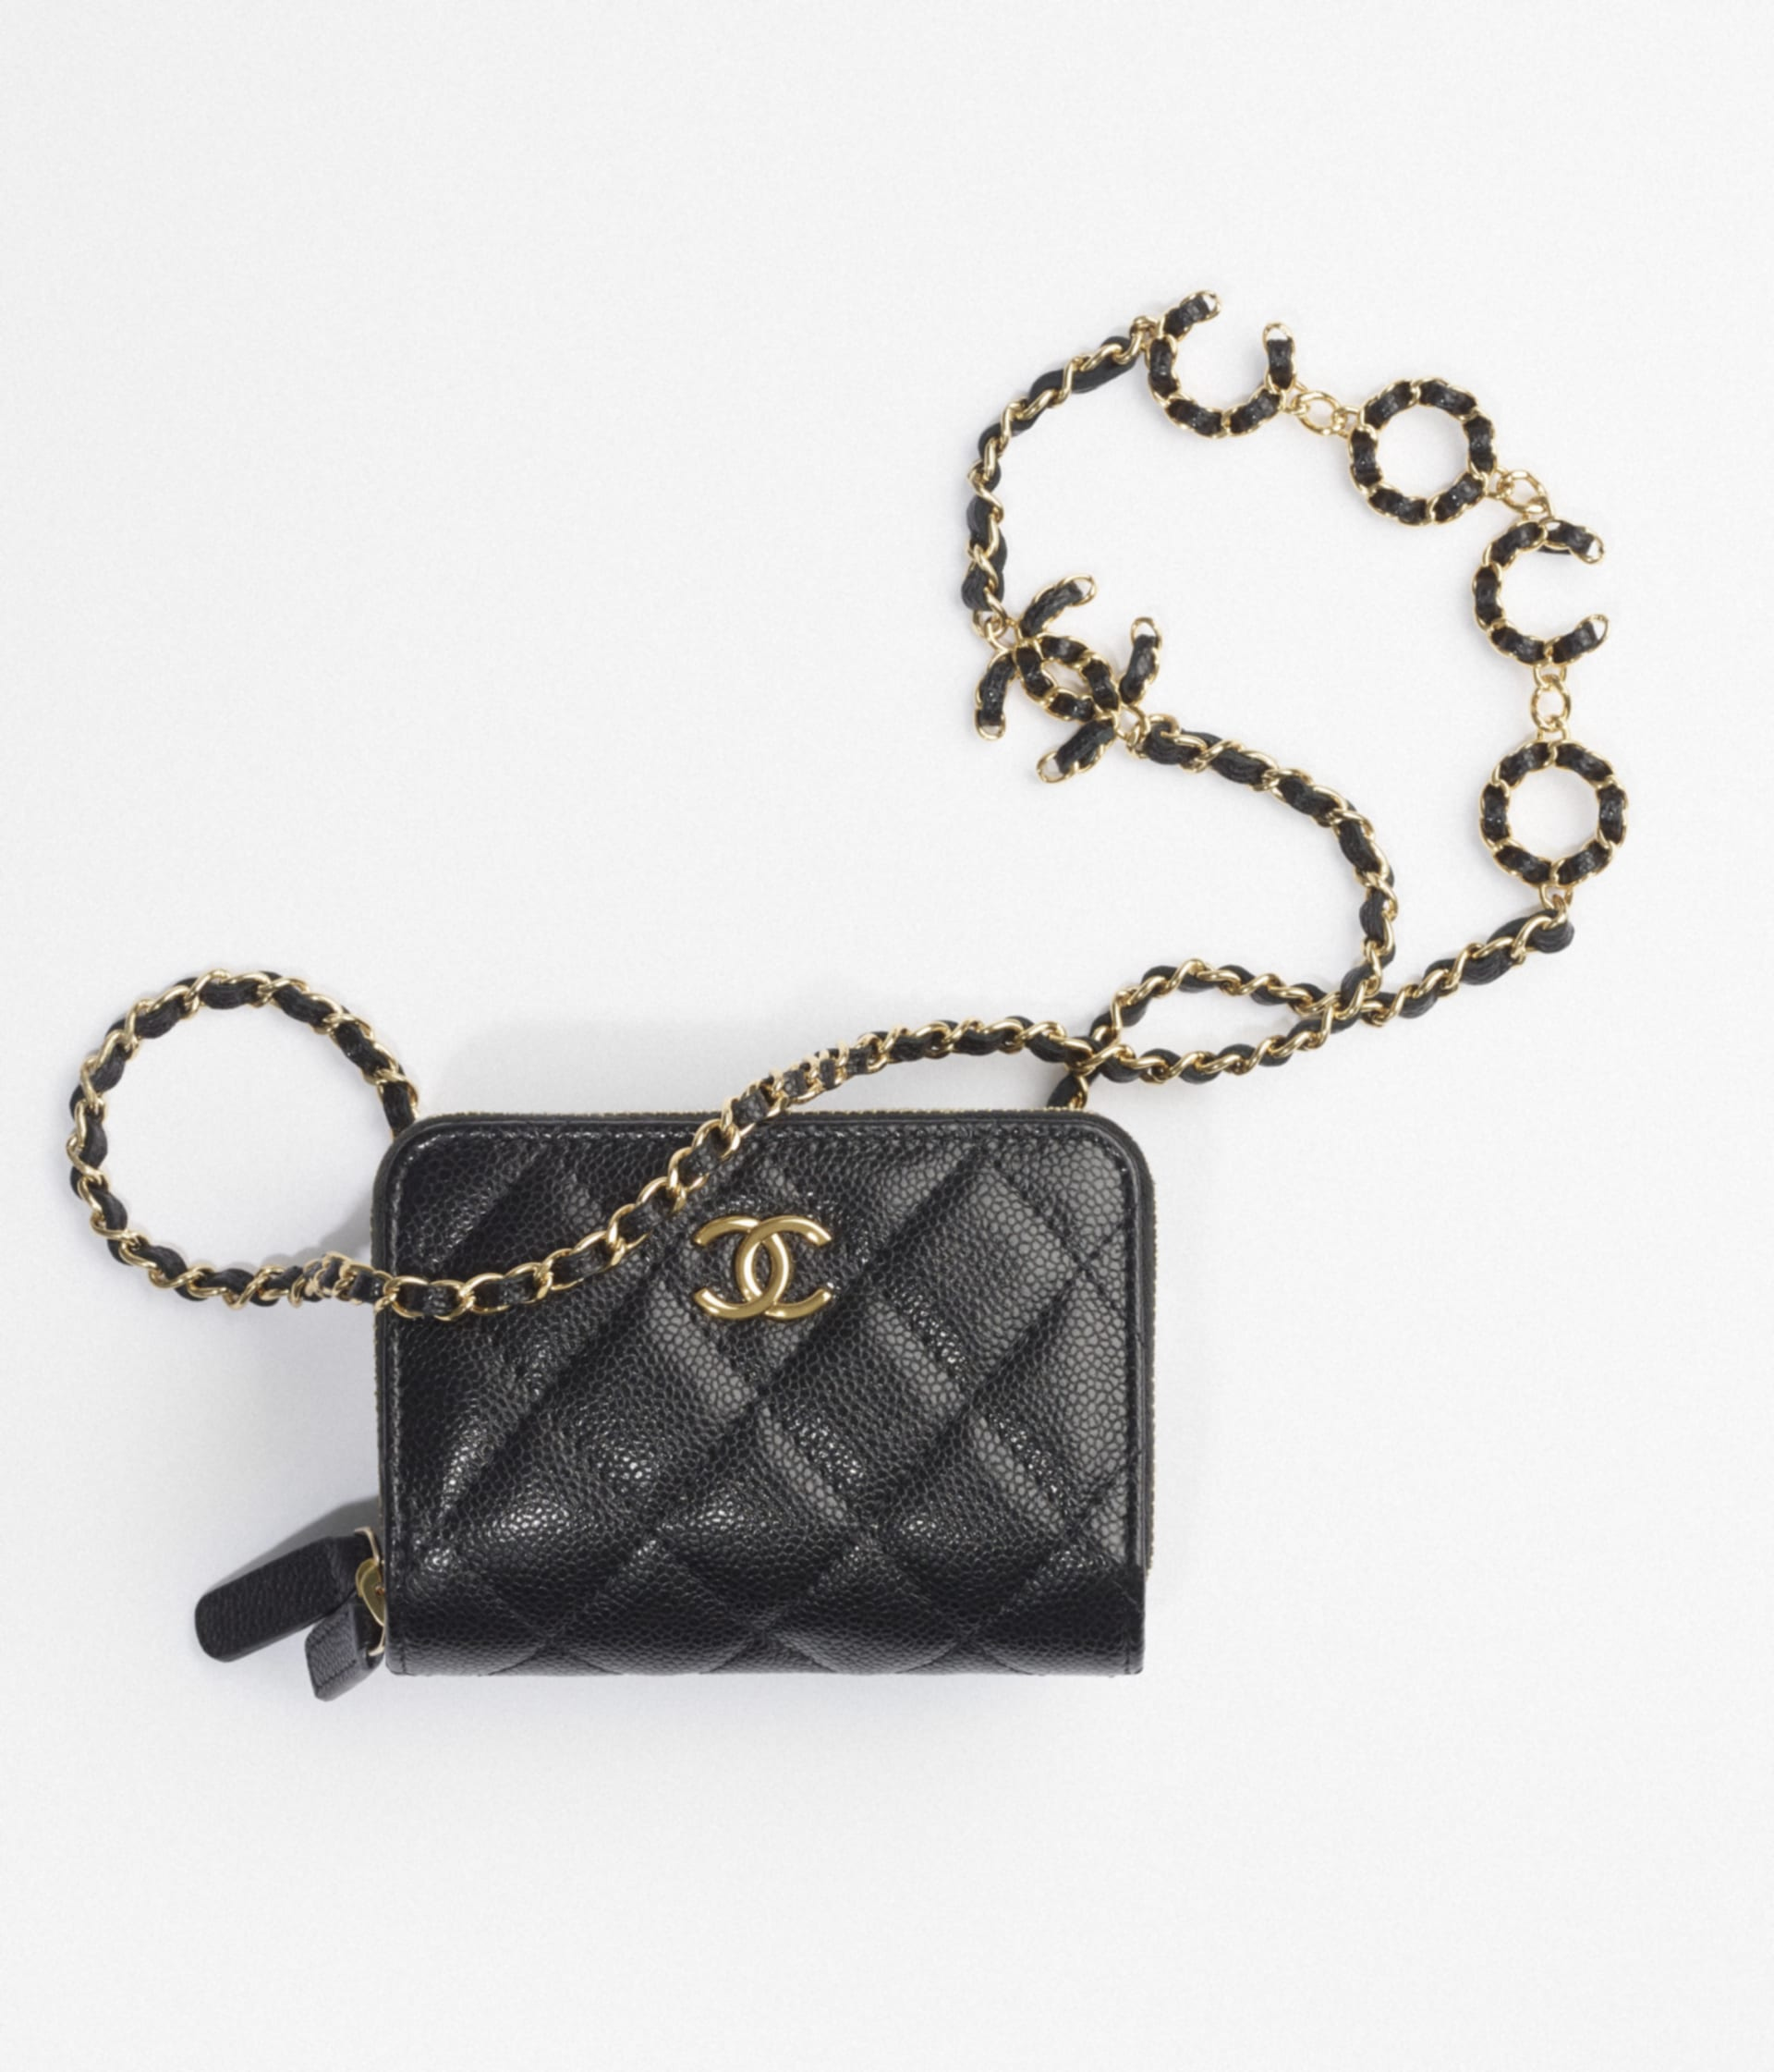 image 1 - Clutch with Chain - Grained Calfskin & Gold-Tone Metal - Black